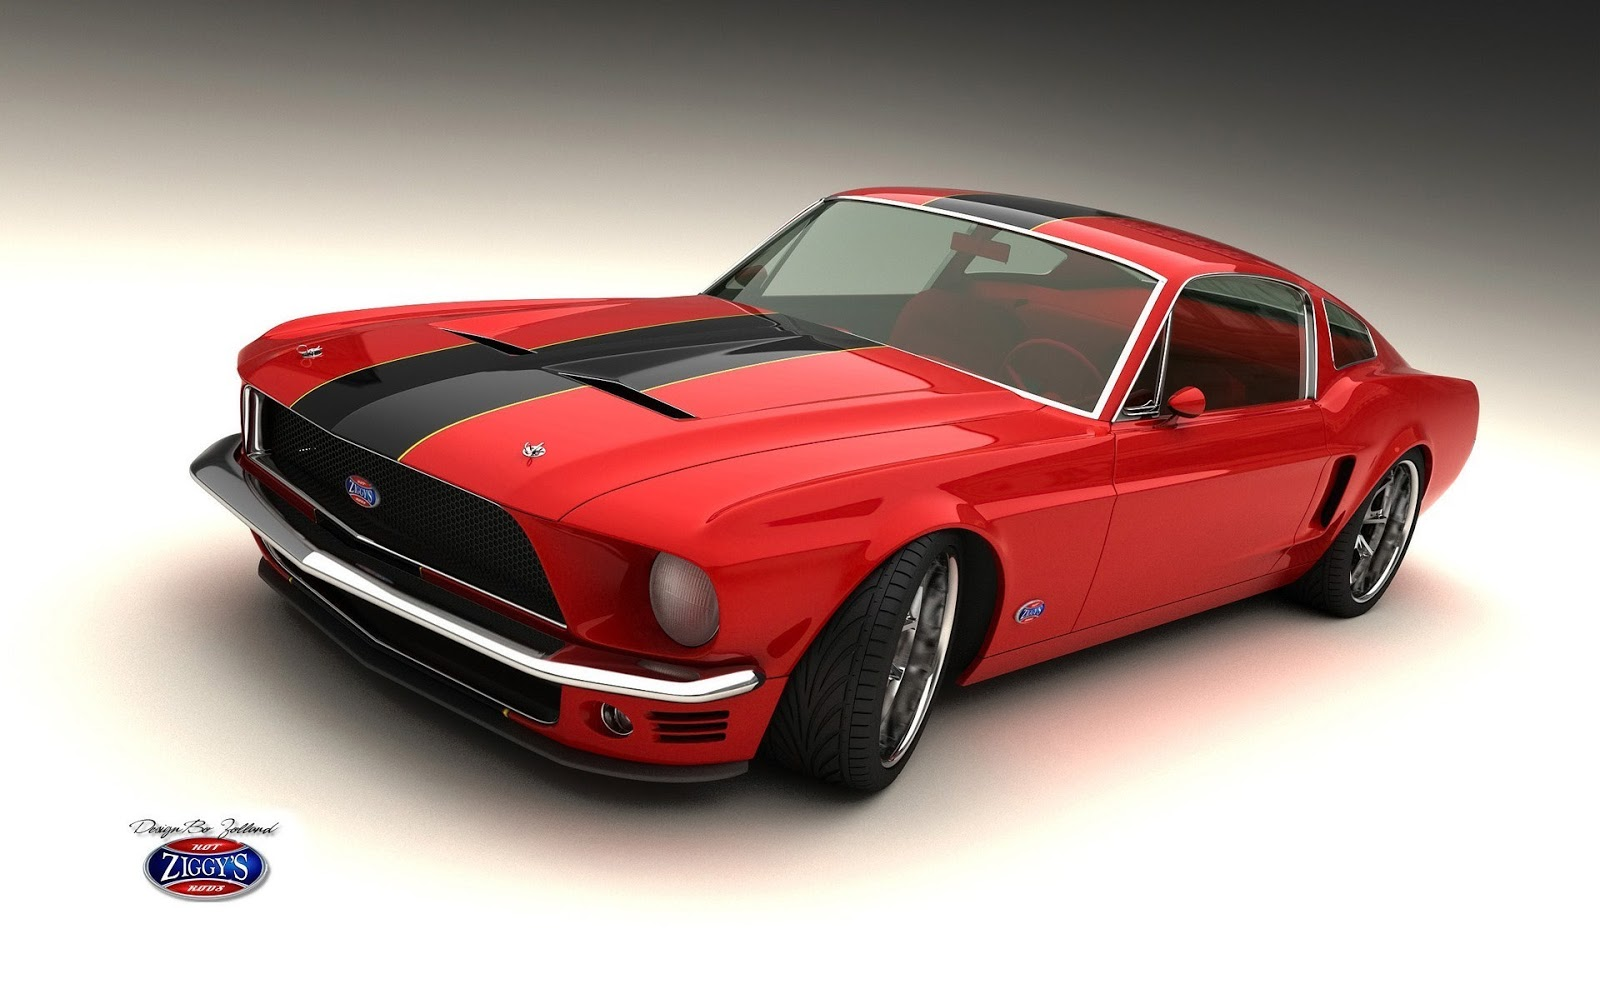 hd wallpapers collection muscle cars mustang. Black Bedroom Furniture Sets. Home Design Ideas